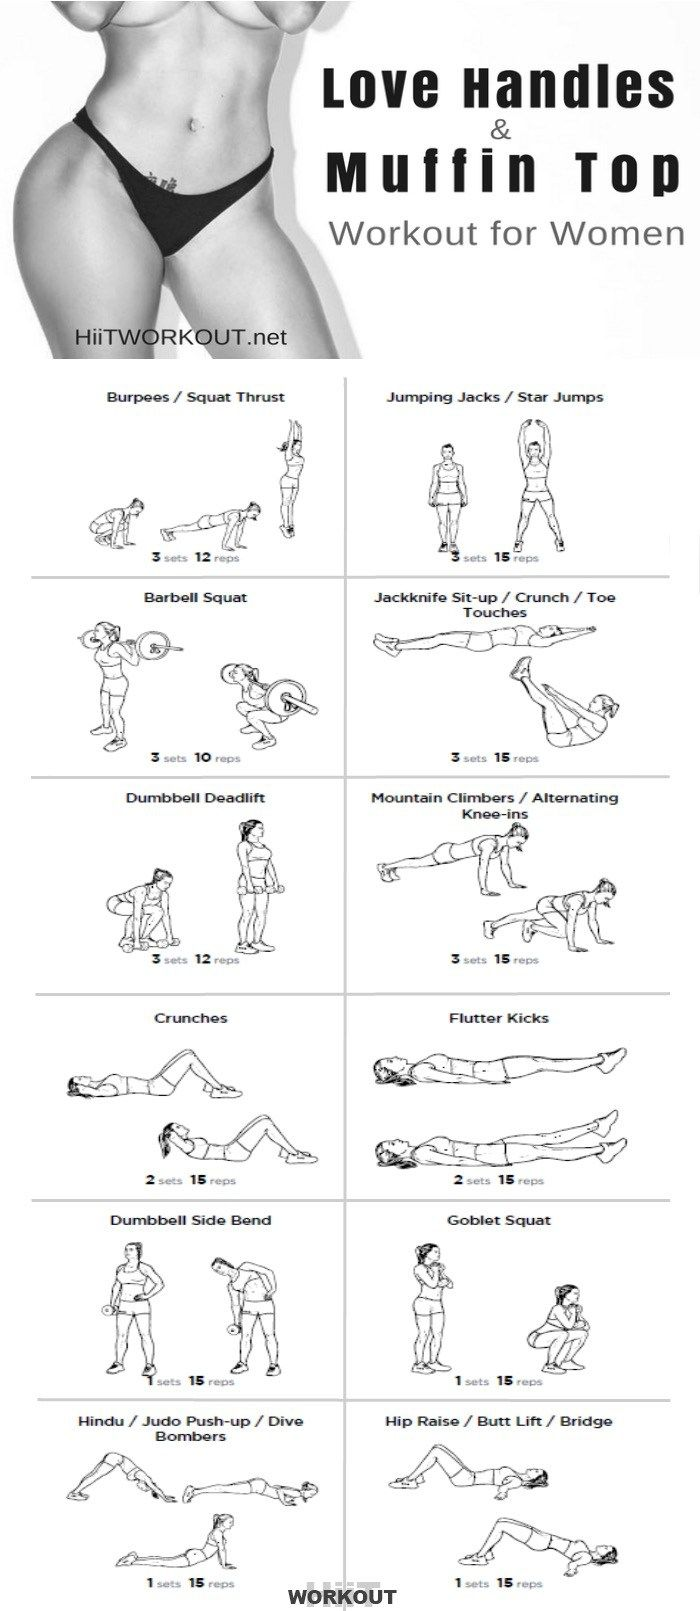 Love Handle Workout This muffin top workout is a great way to get the booty you want this summer. Over the past couple of years women have worked to get rounded tonned bums and it has become more known during the summer months for swim wear season. This is a proven workout to grow, tone…